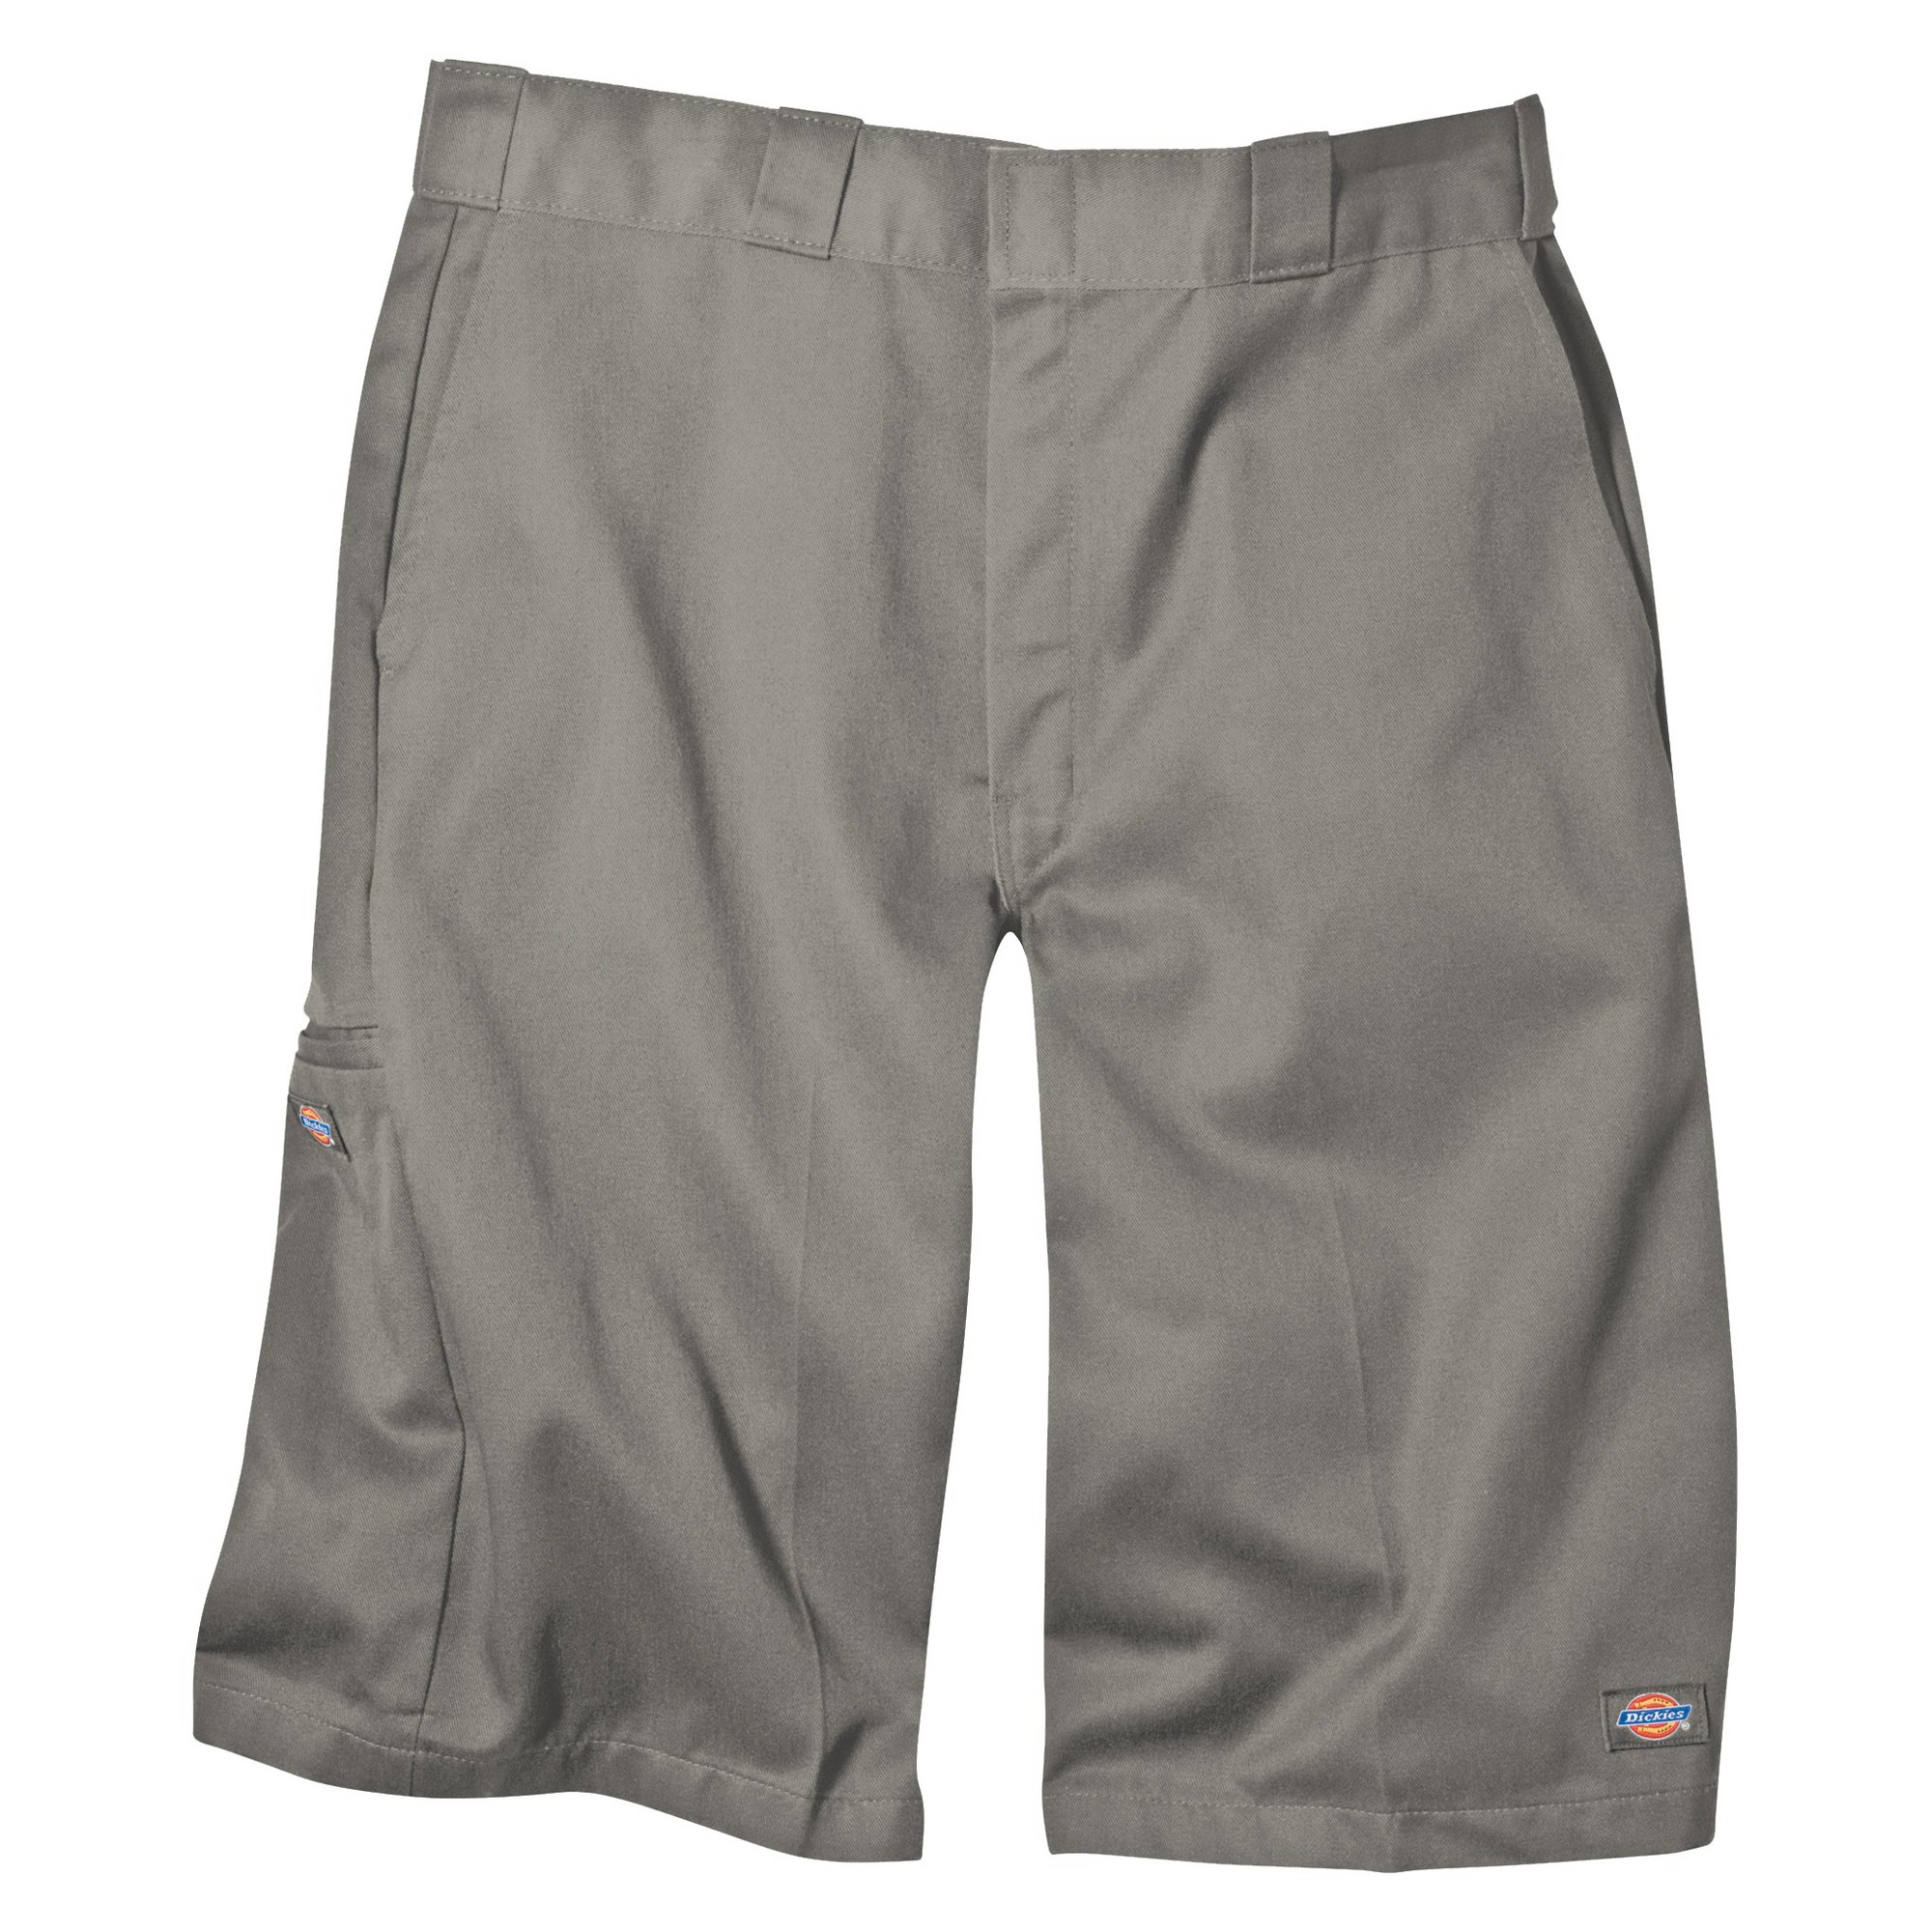 'Dickies Men's Loose Fit Twill 13'' Multi-Pocket Work Shorts- Silver Gray 42'